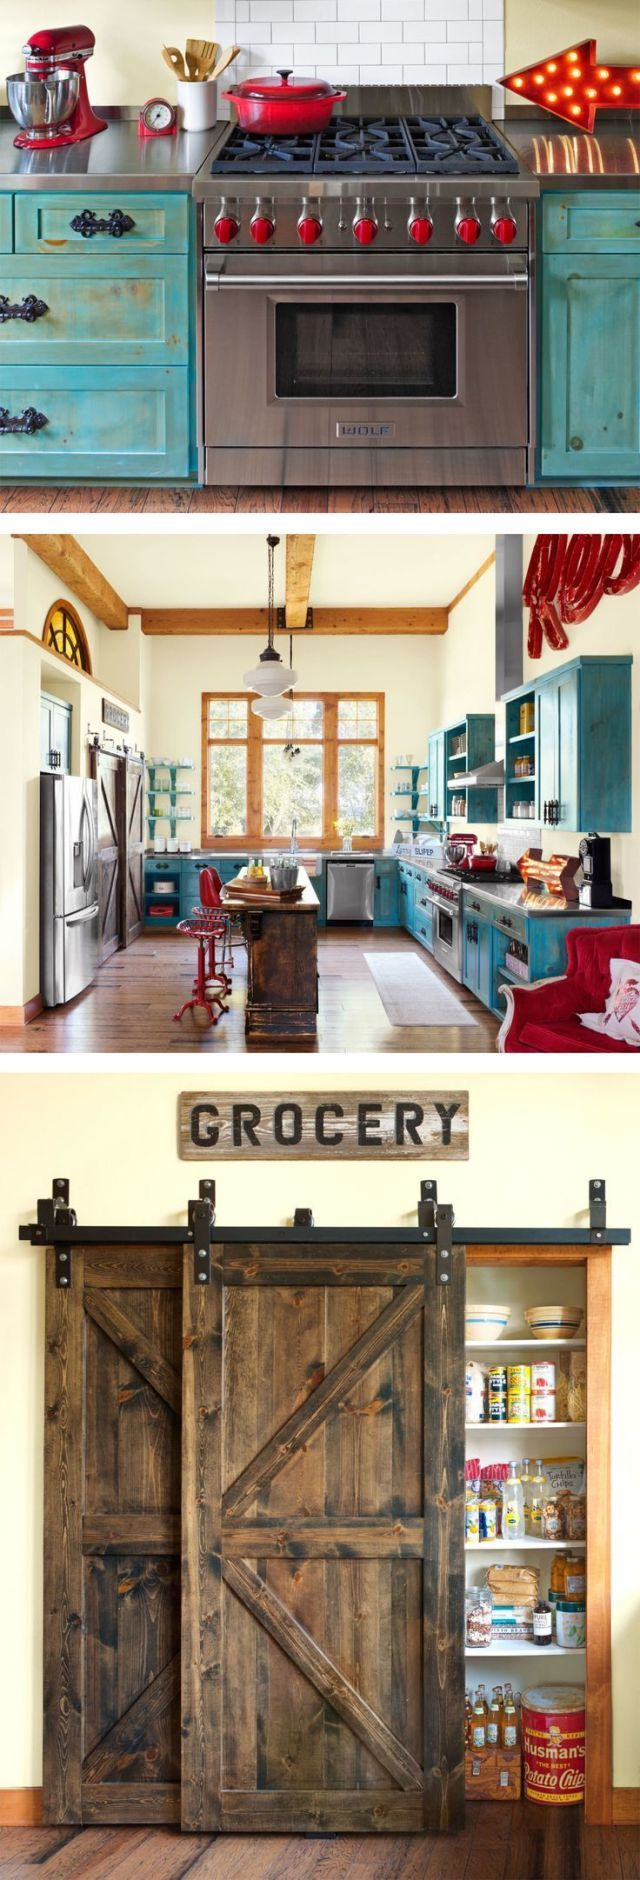 15 Genius Design Ideas That Majorly Inspired Us in 2015   - CountryLiving.com